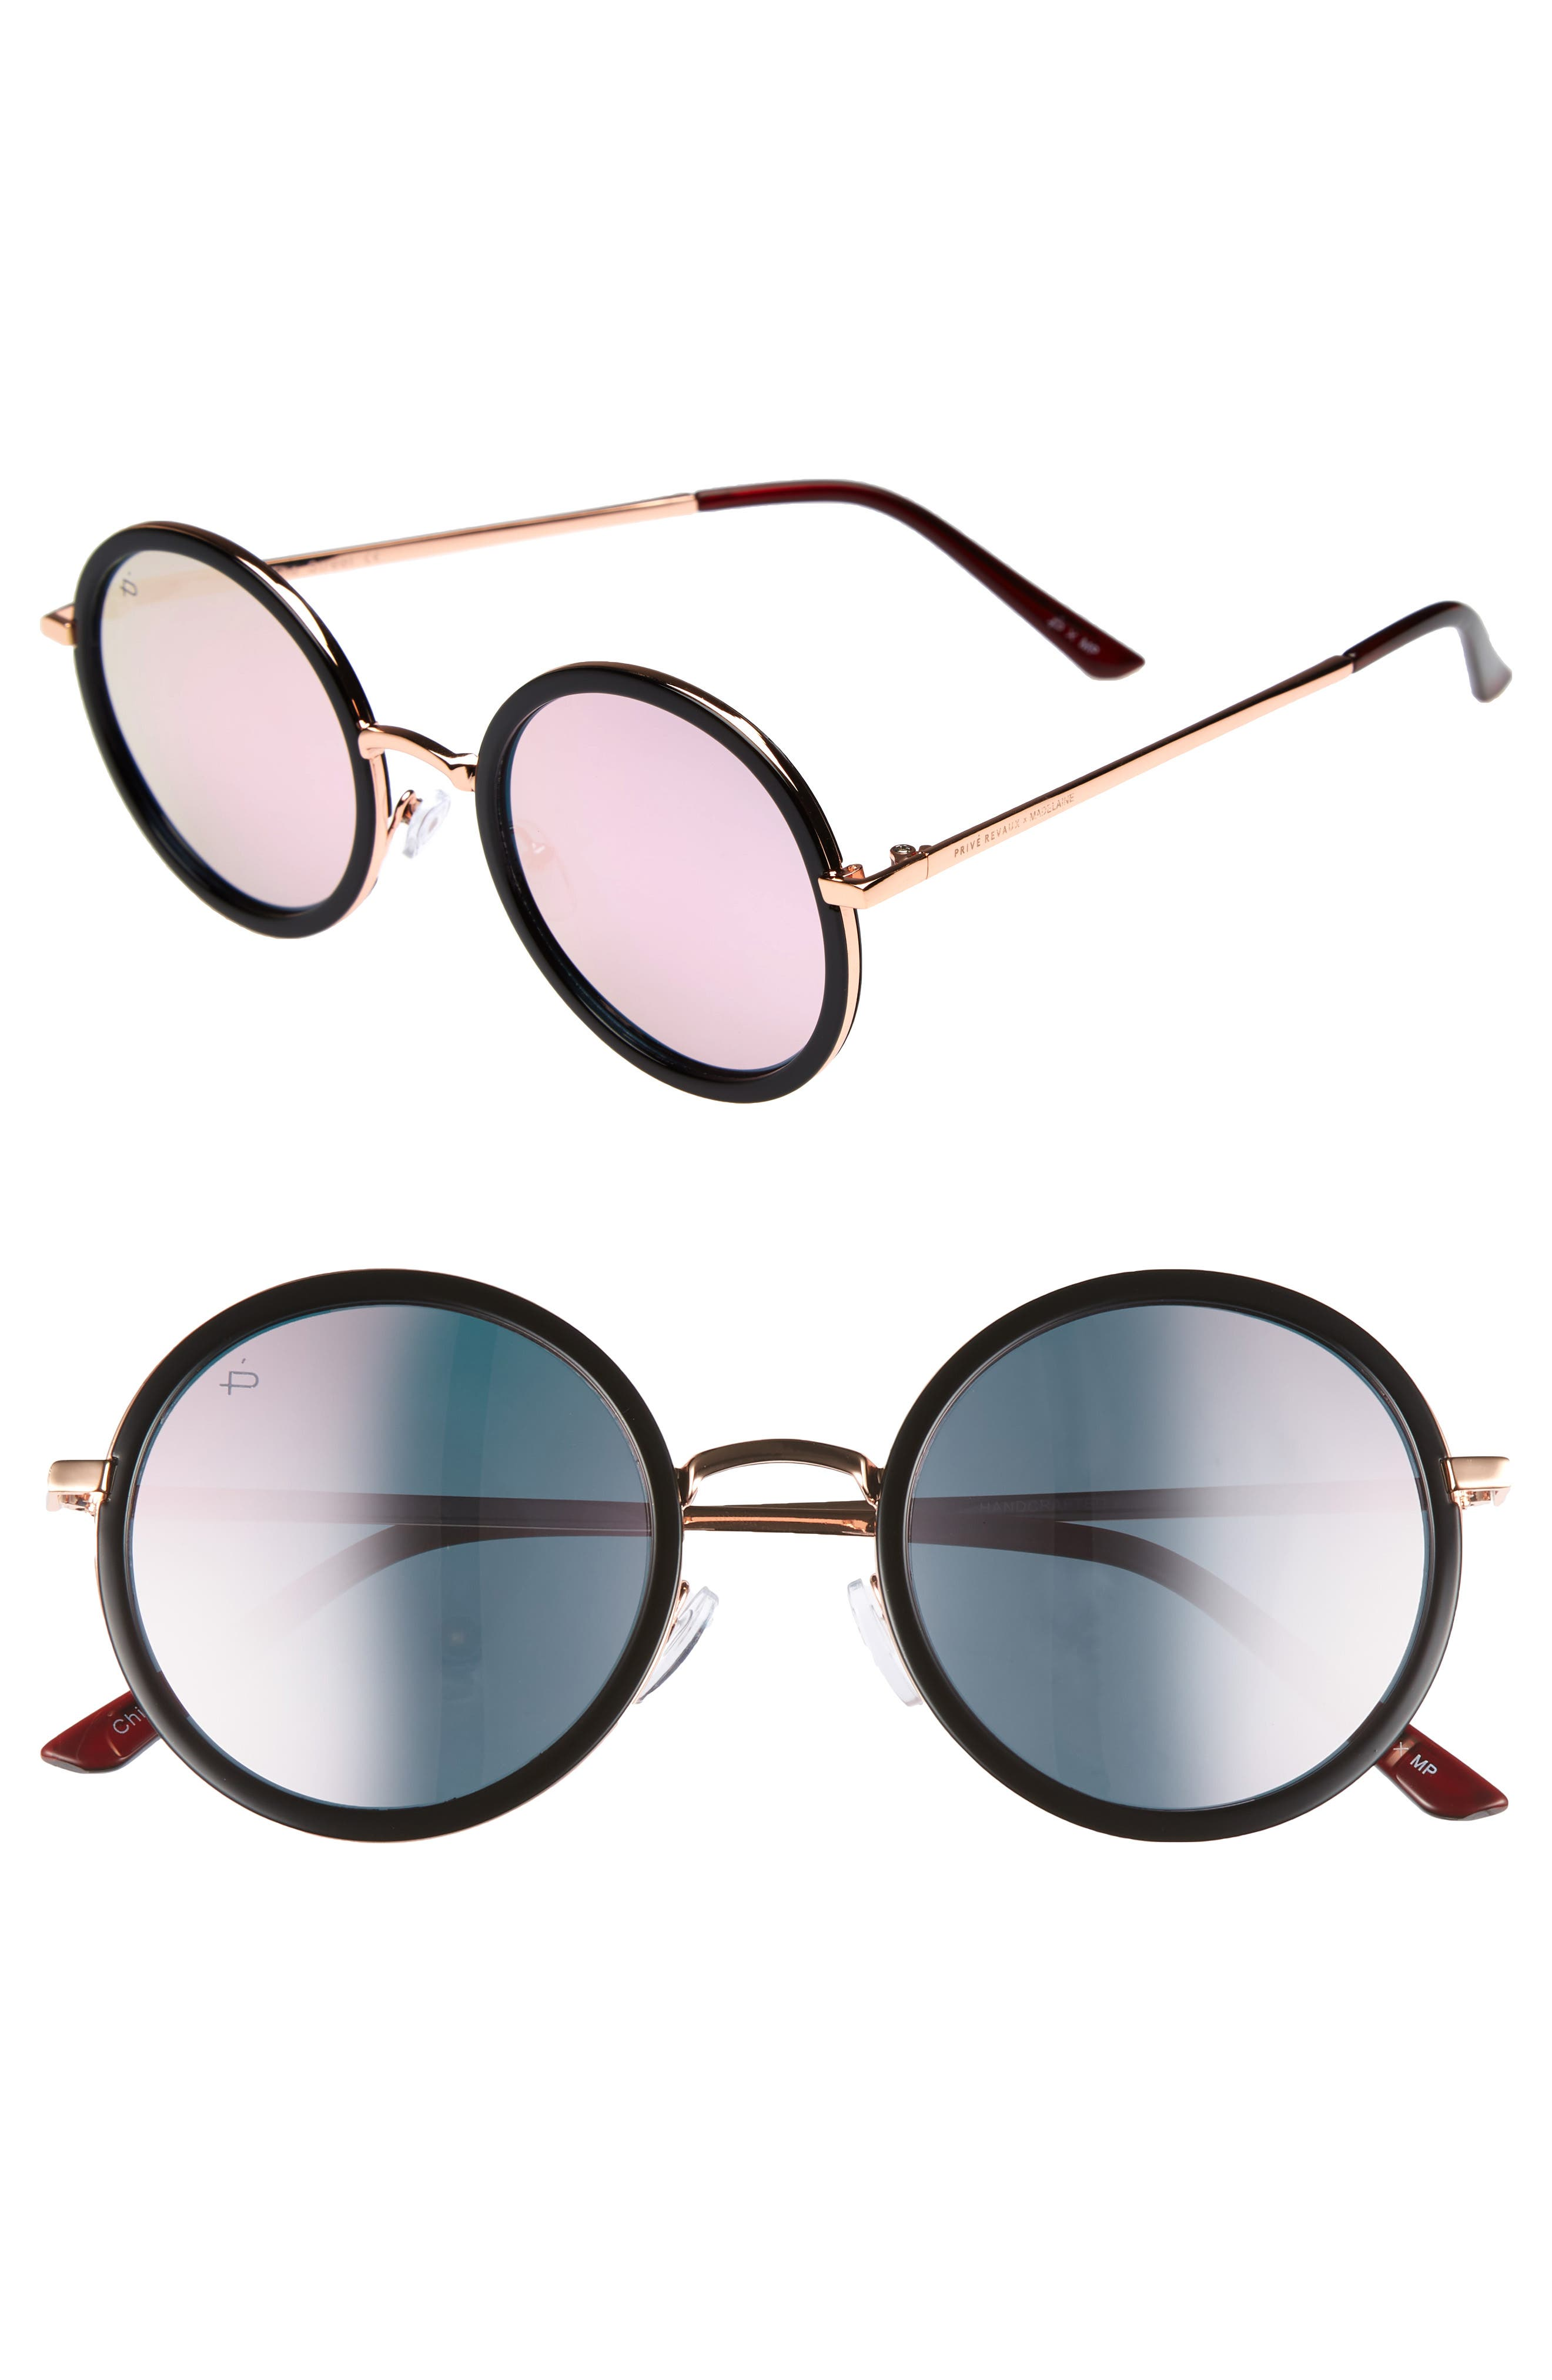 Privé Revaux x Madelaine Petsch The Street 53mm Round Sunglasses,                             Main thumbnail 1, color,                             001